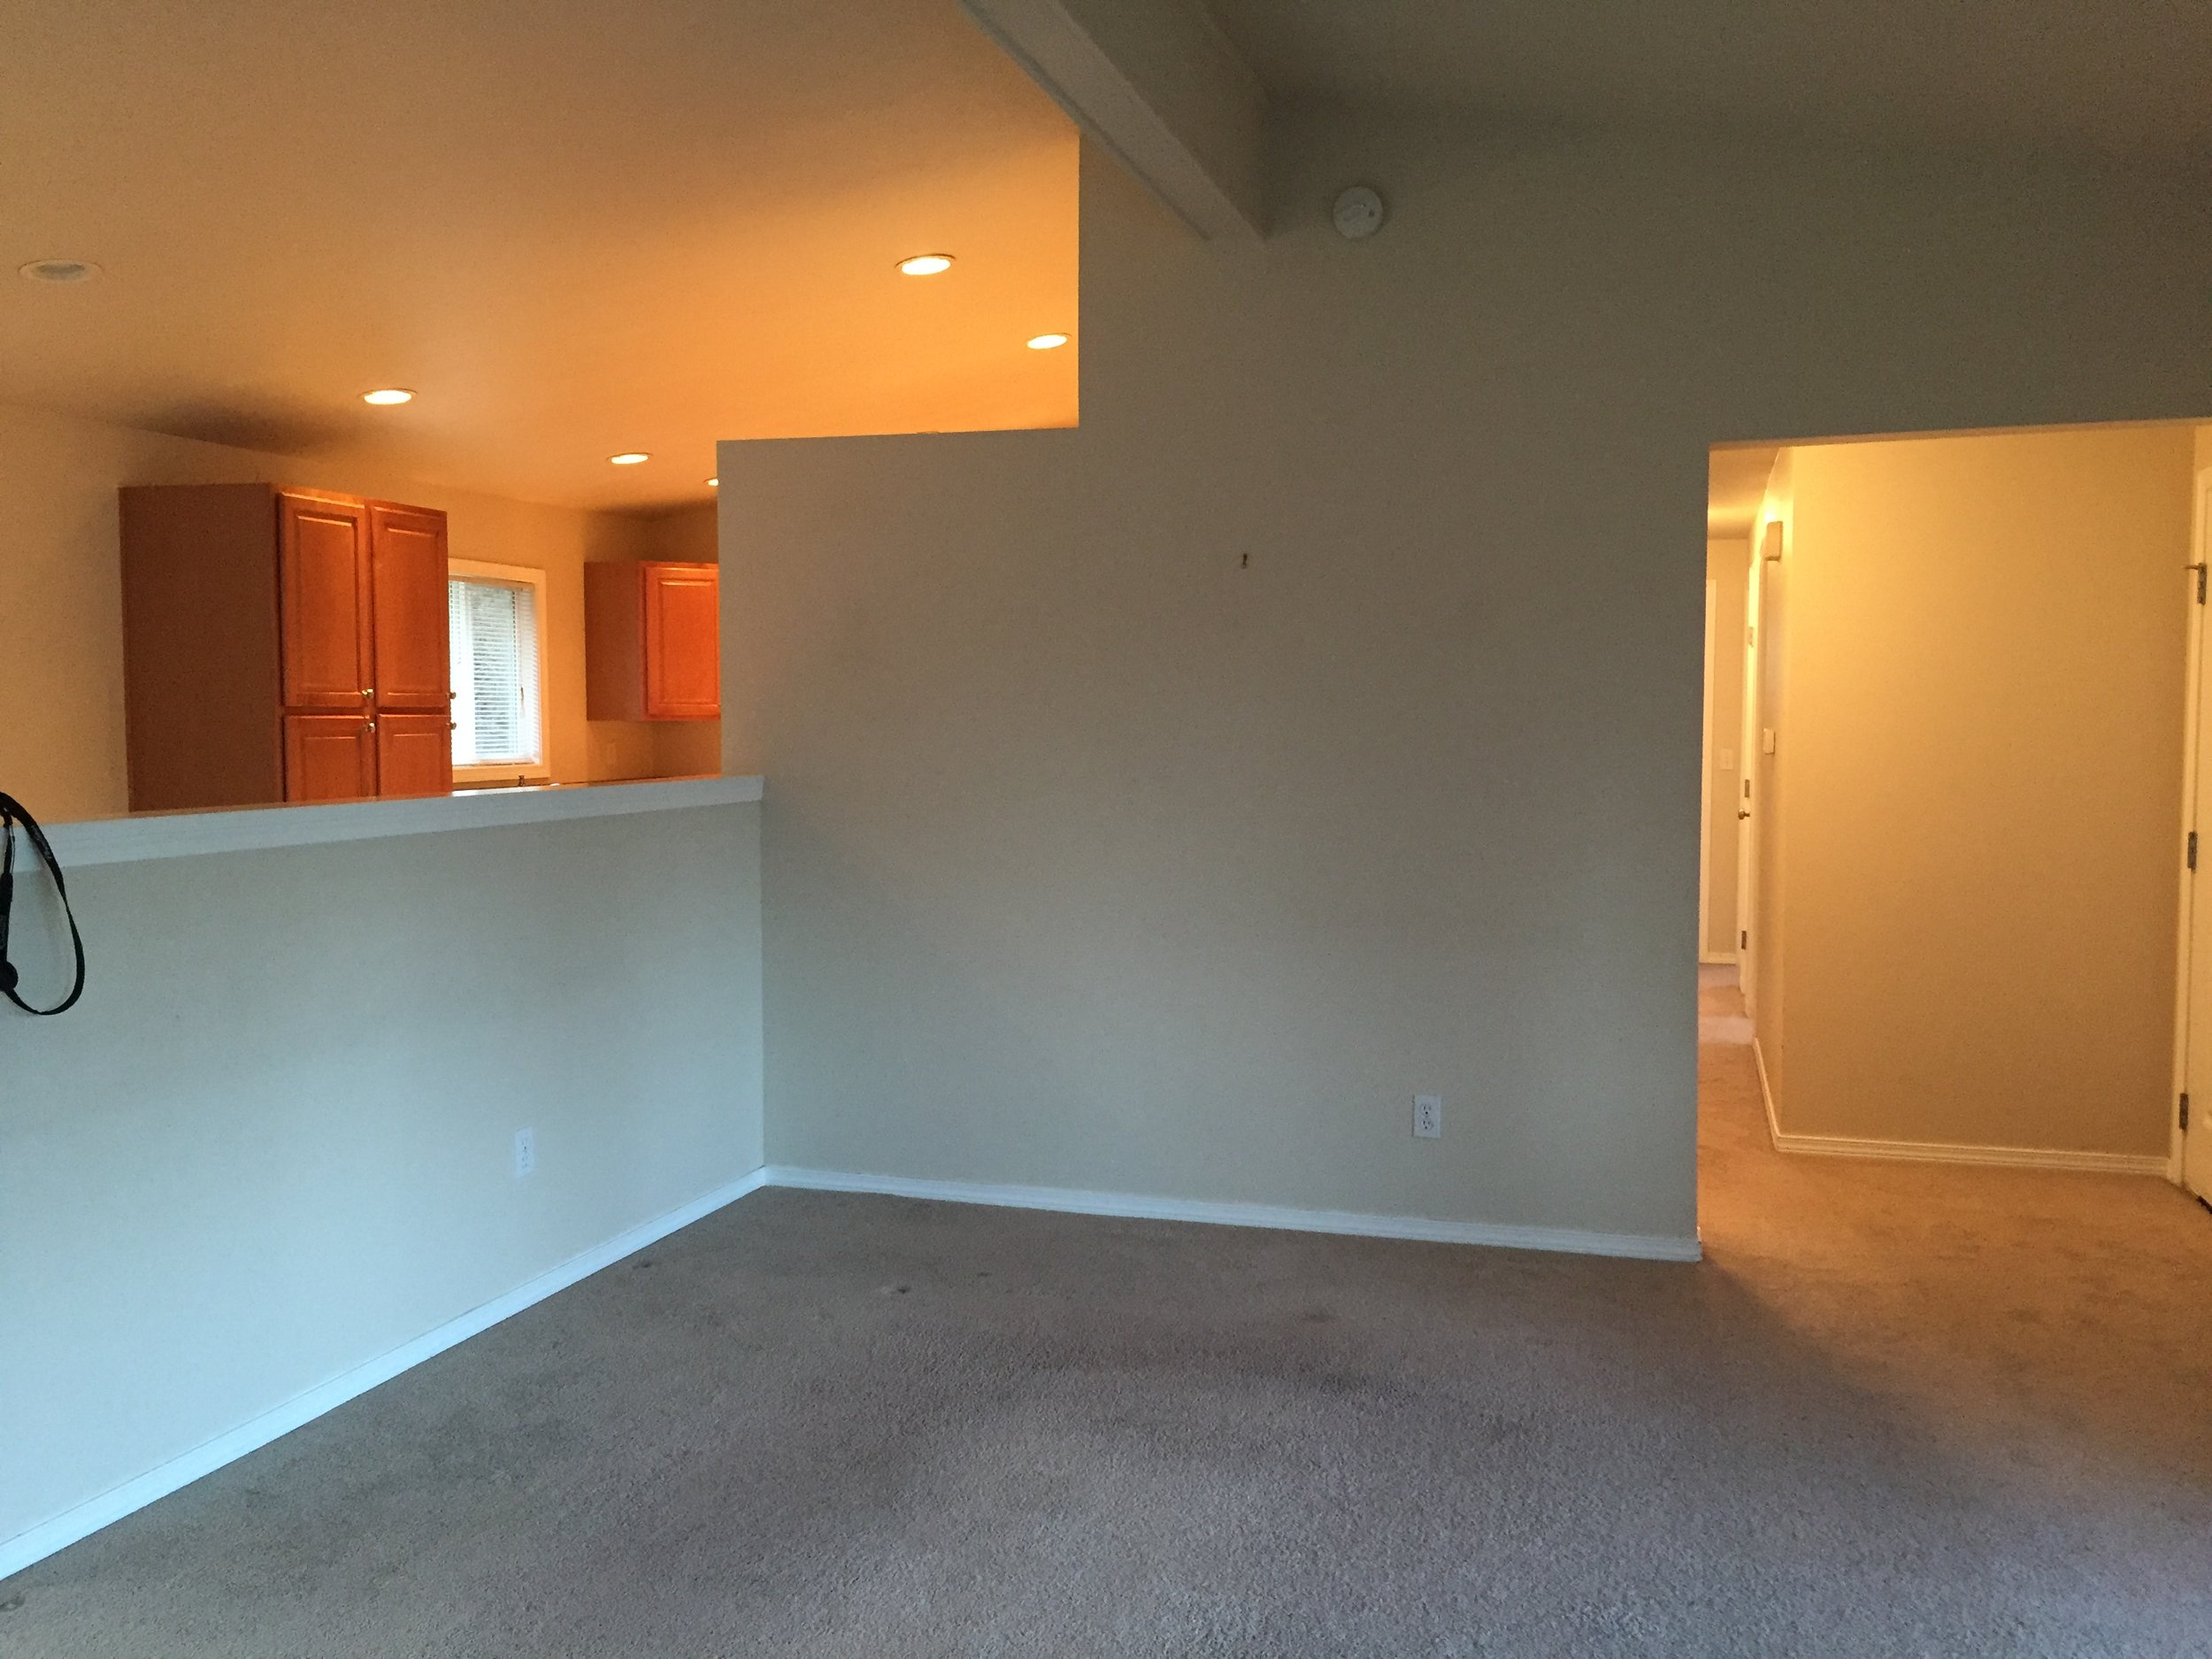 Living Room, Before: Look at all those strange walls and nasty carpet.